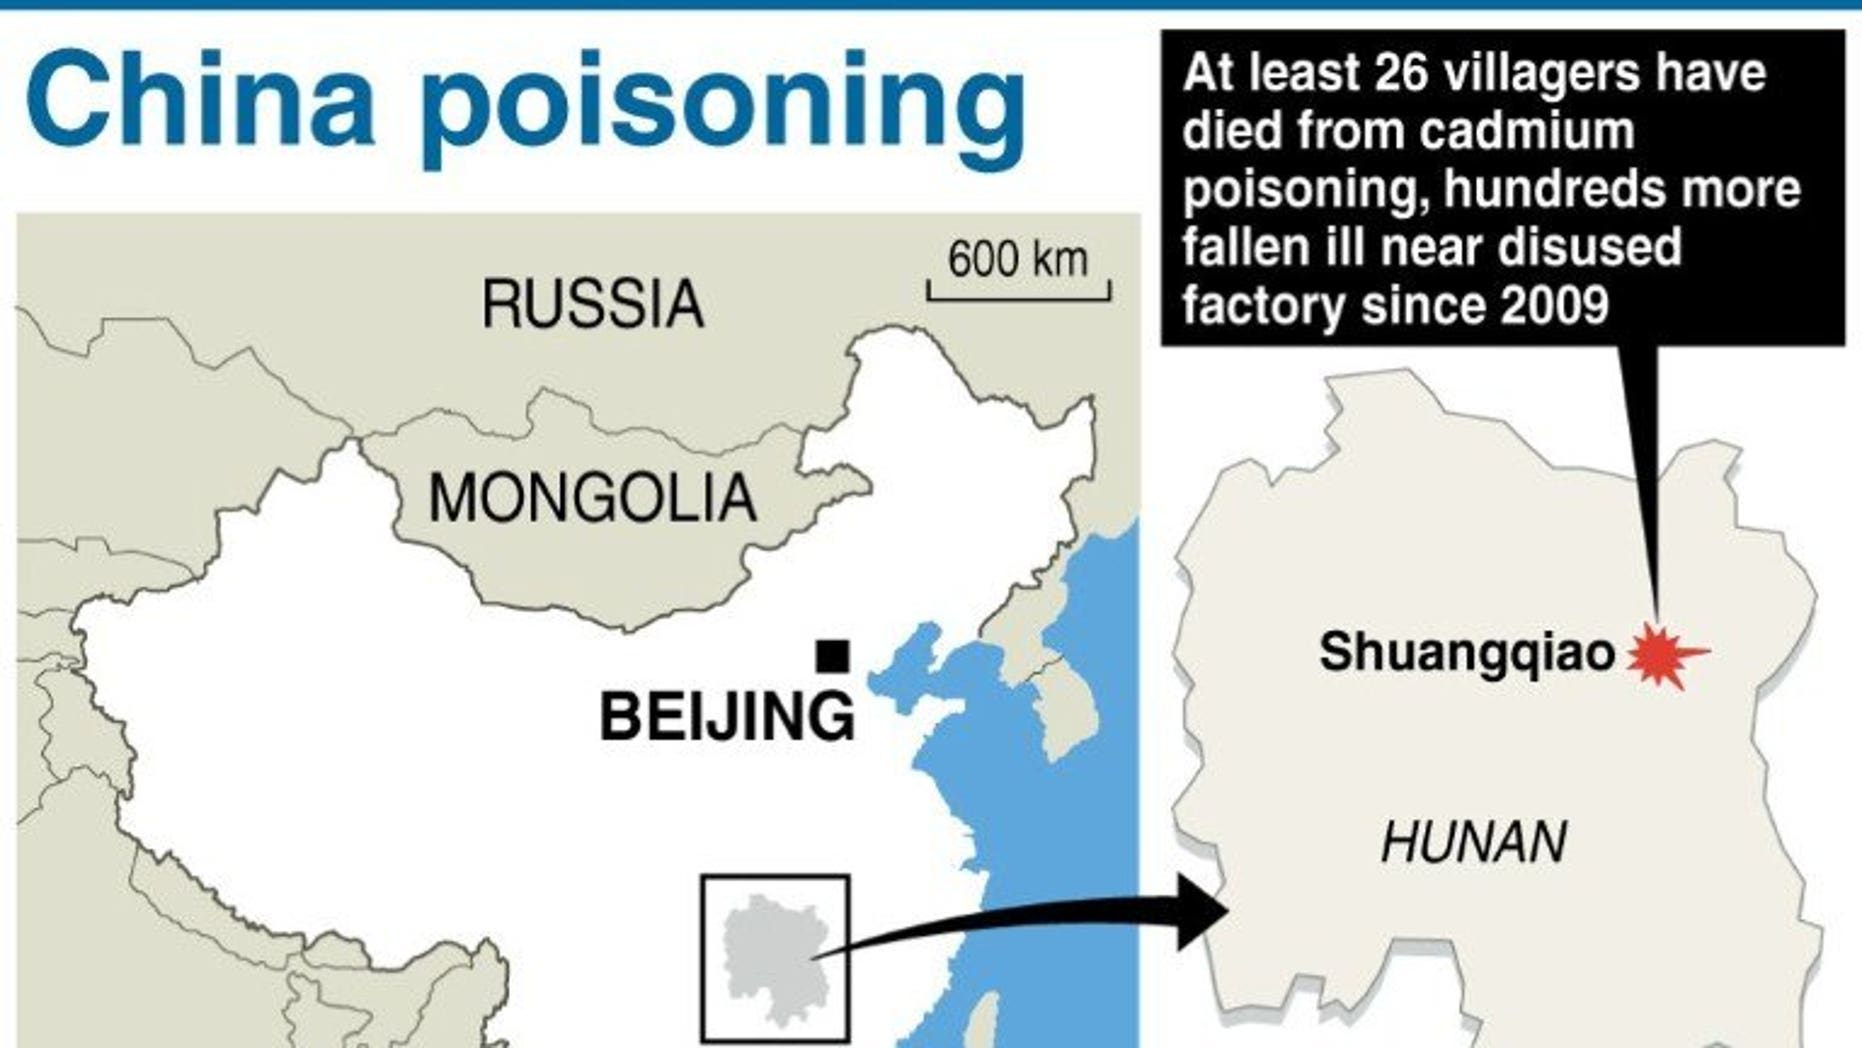 Graphic showing Shuangqiao in Hunan province, where at least 26 villagers have died from cadmium poisoning and hundreds fallen ill since 2009.